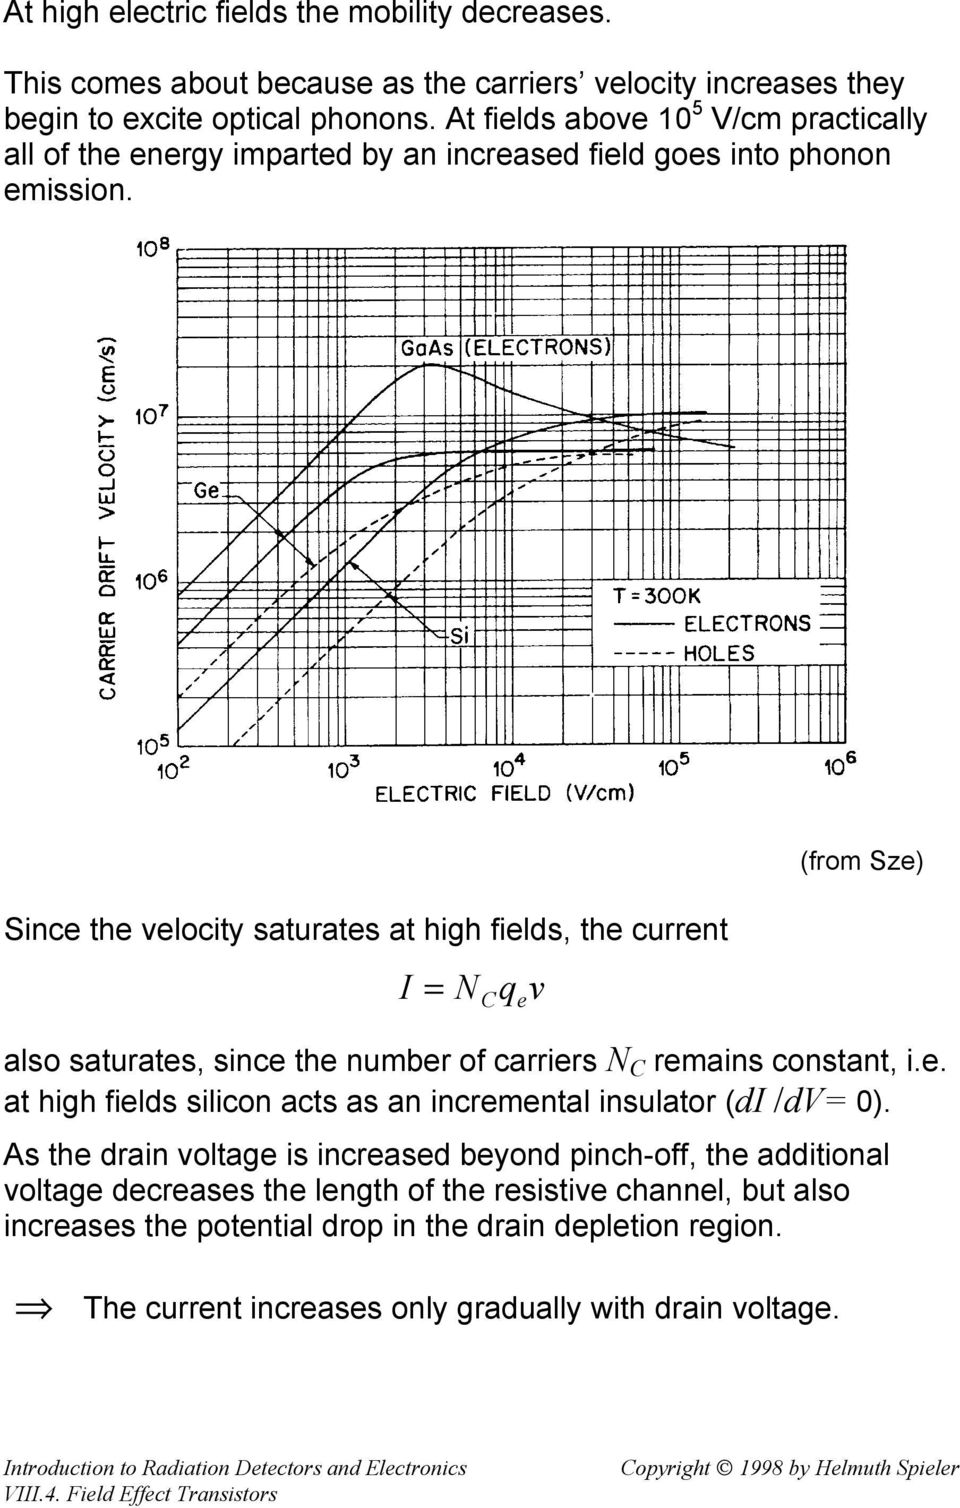 Since the velocity saturates at high fields, the current I = N also saturates, since the number of carriers N C remains constant, i.e. at high fields silicon acts as an incremental insulator (di /dv= 0).